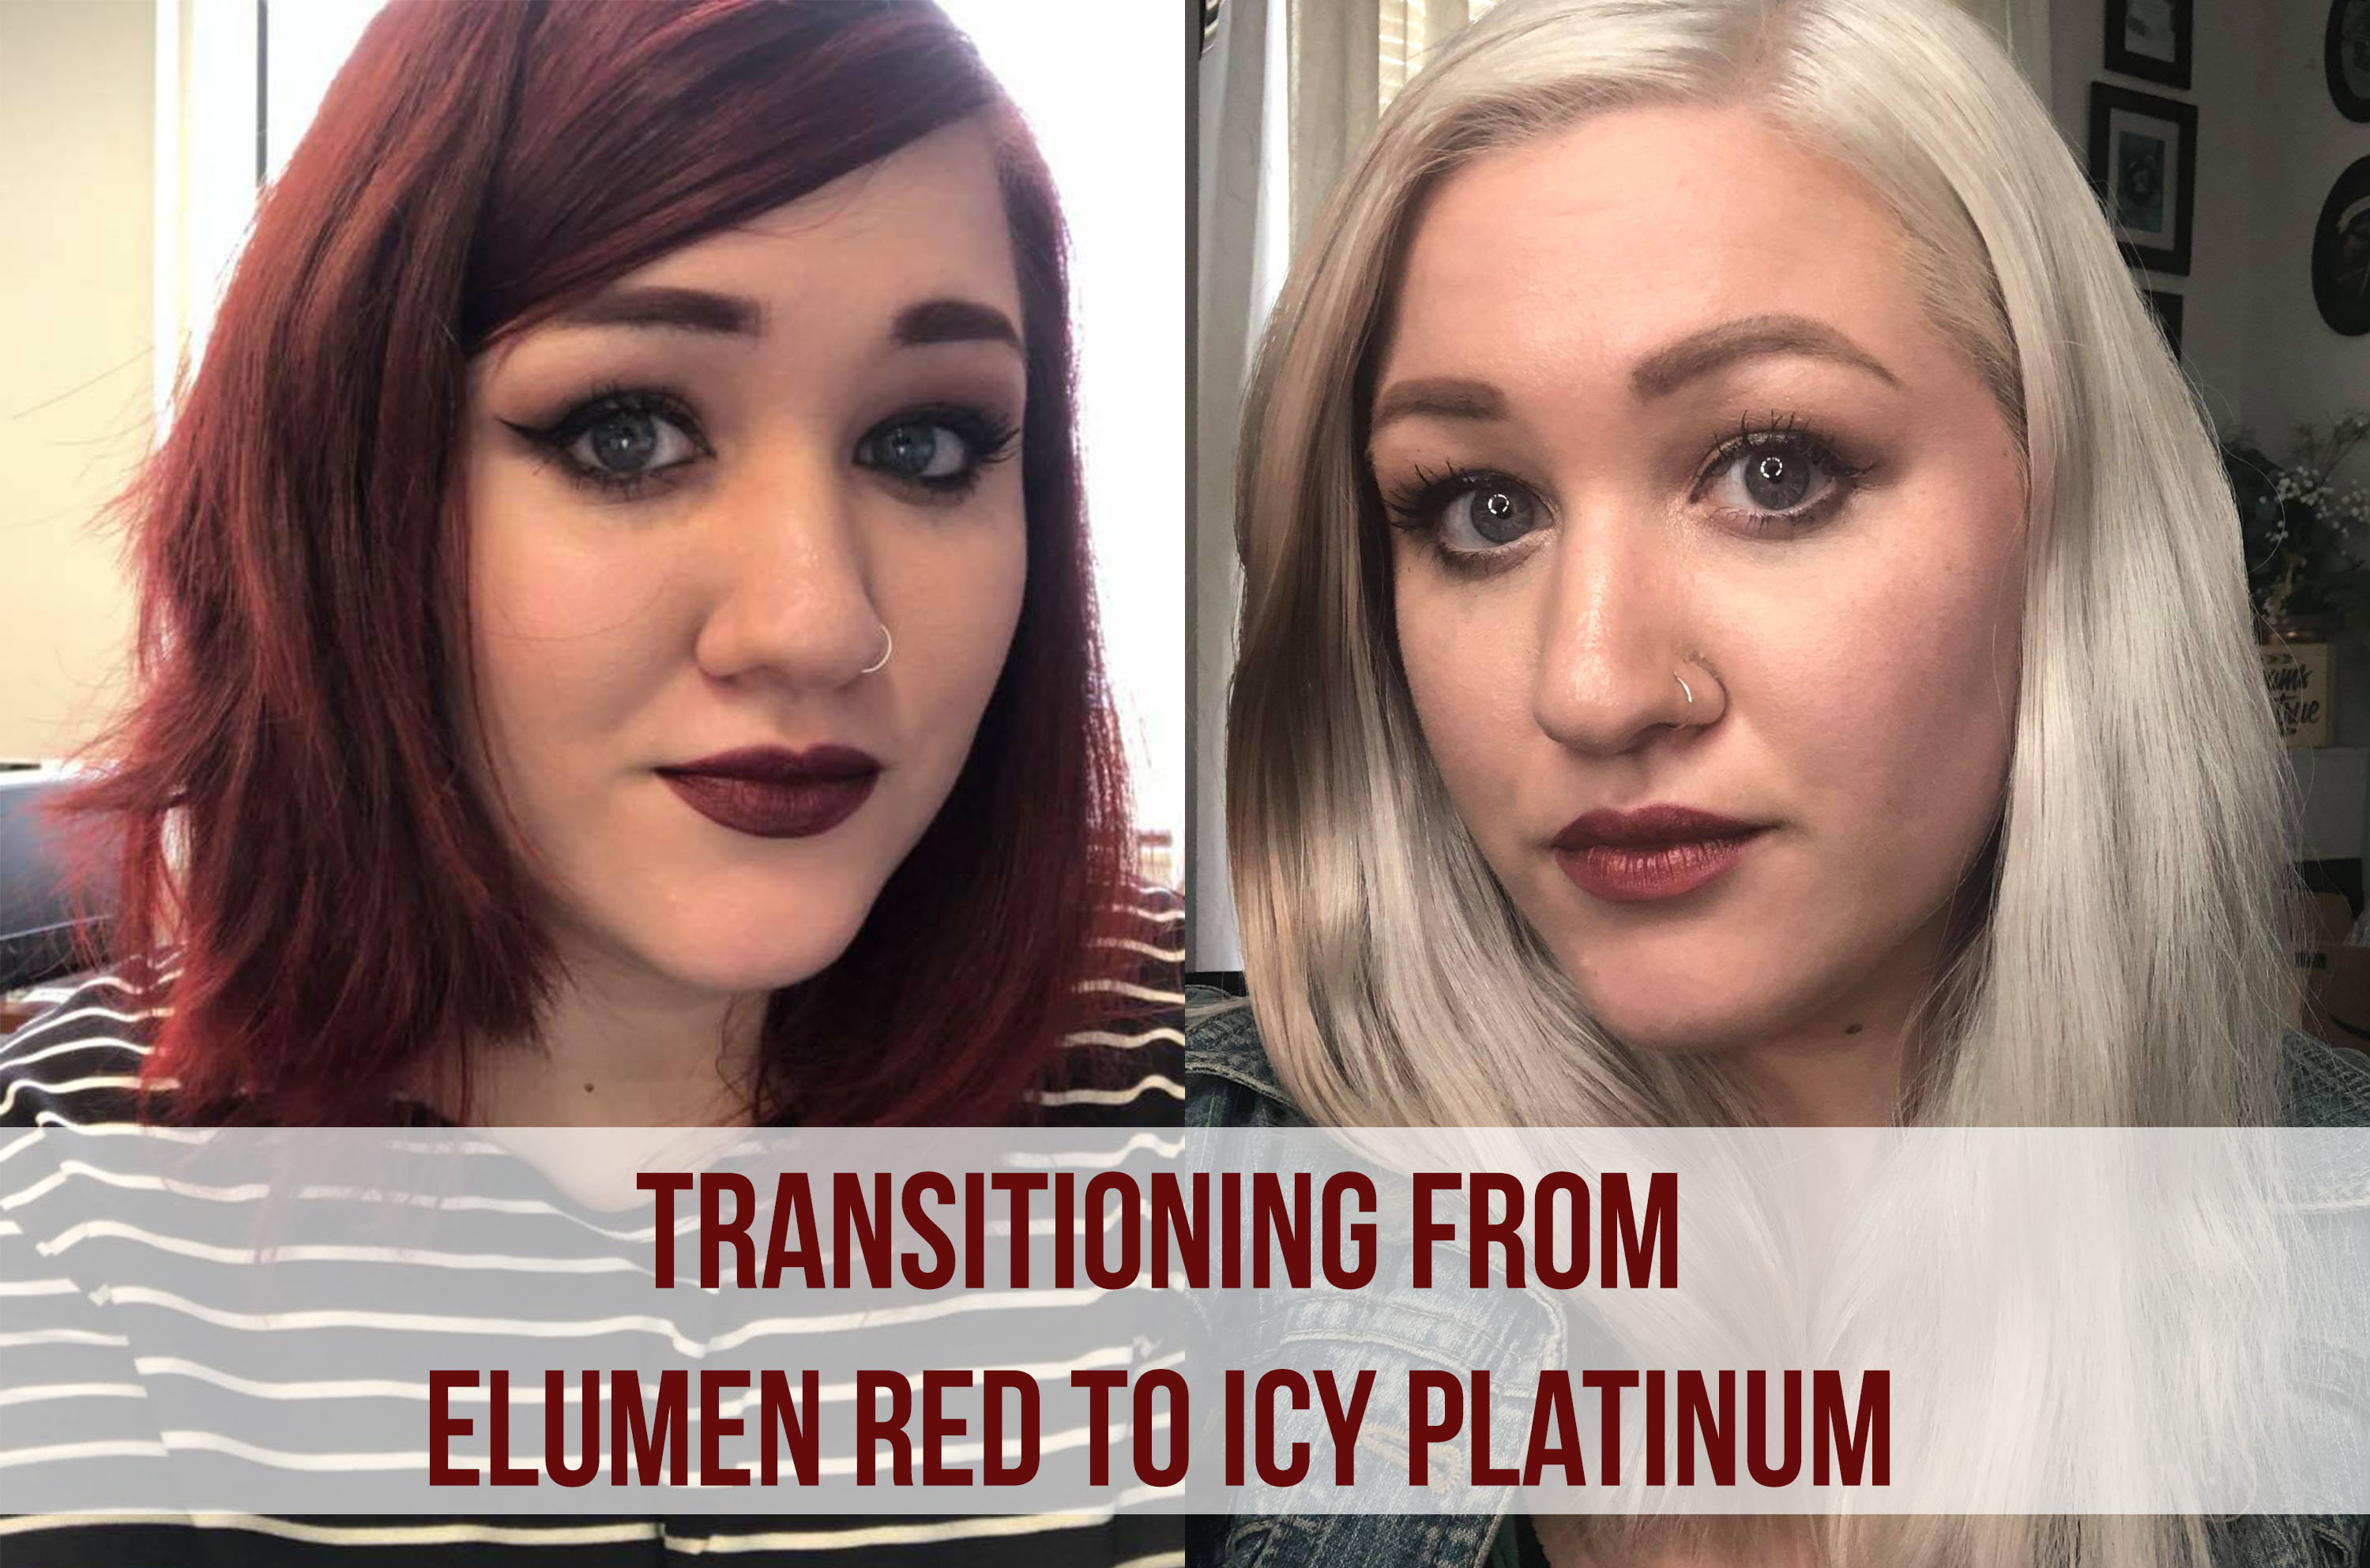 Transitioning From Elumen Red To Icy Platinum